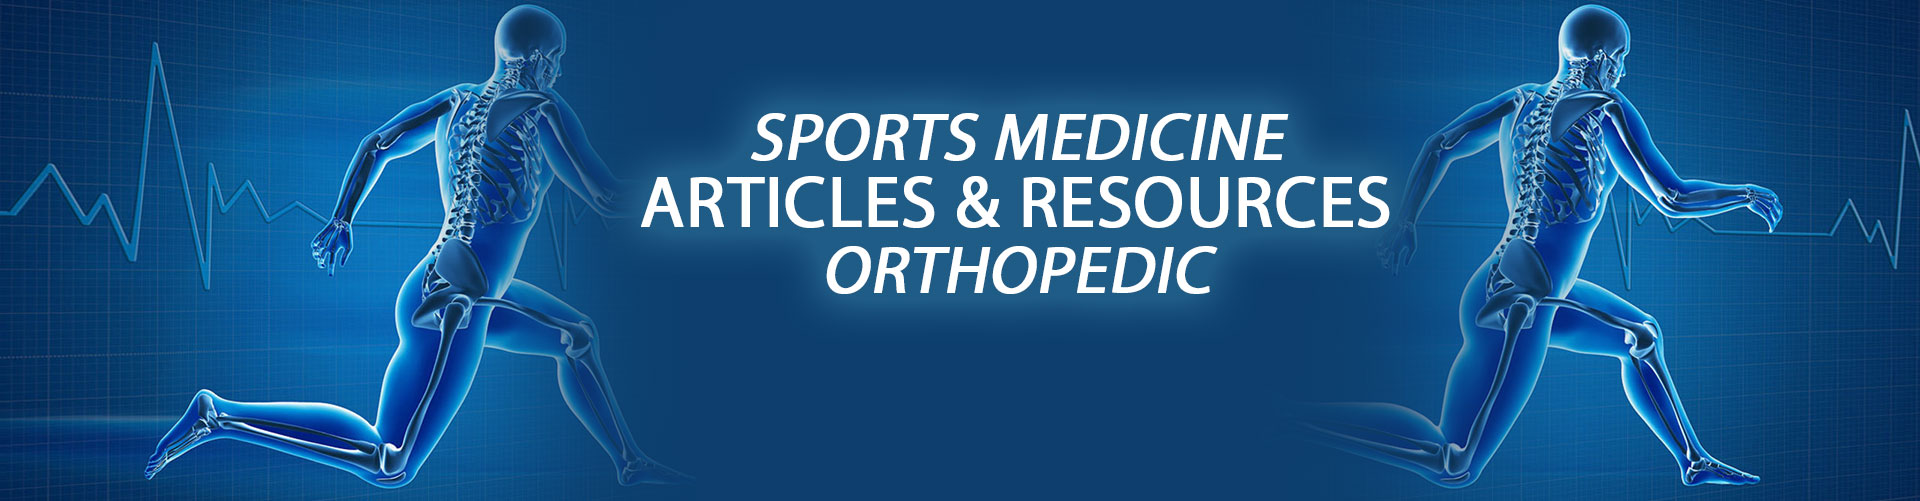 Kevin-Collins-MD-Sports-Medicine-Orthopedic-Surgeon-sports-medicine-articles-resources-banner